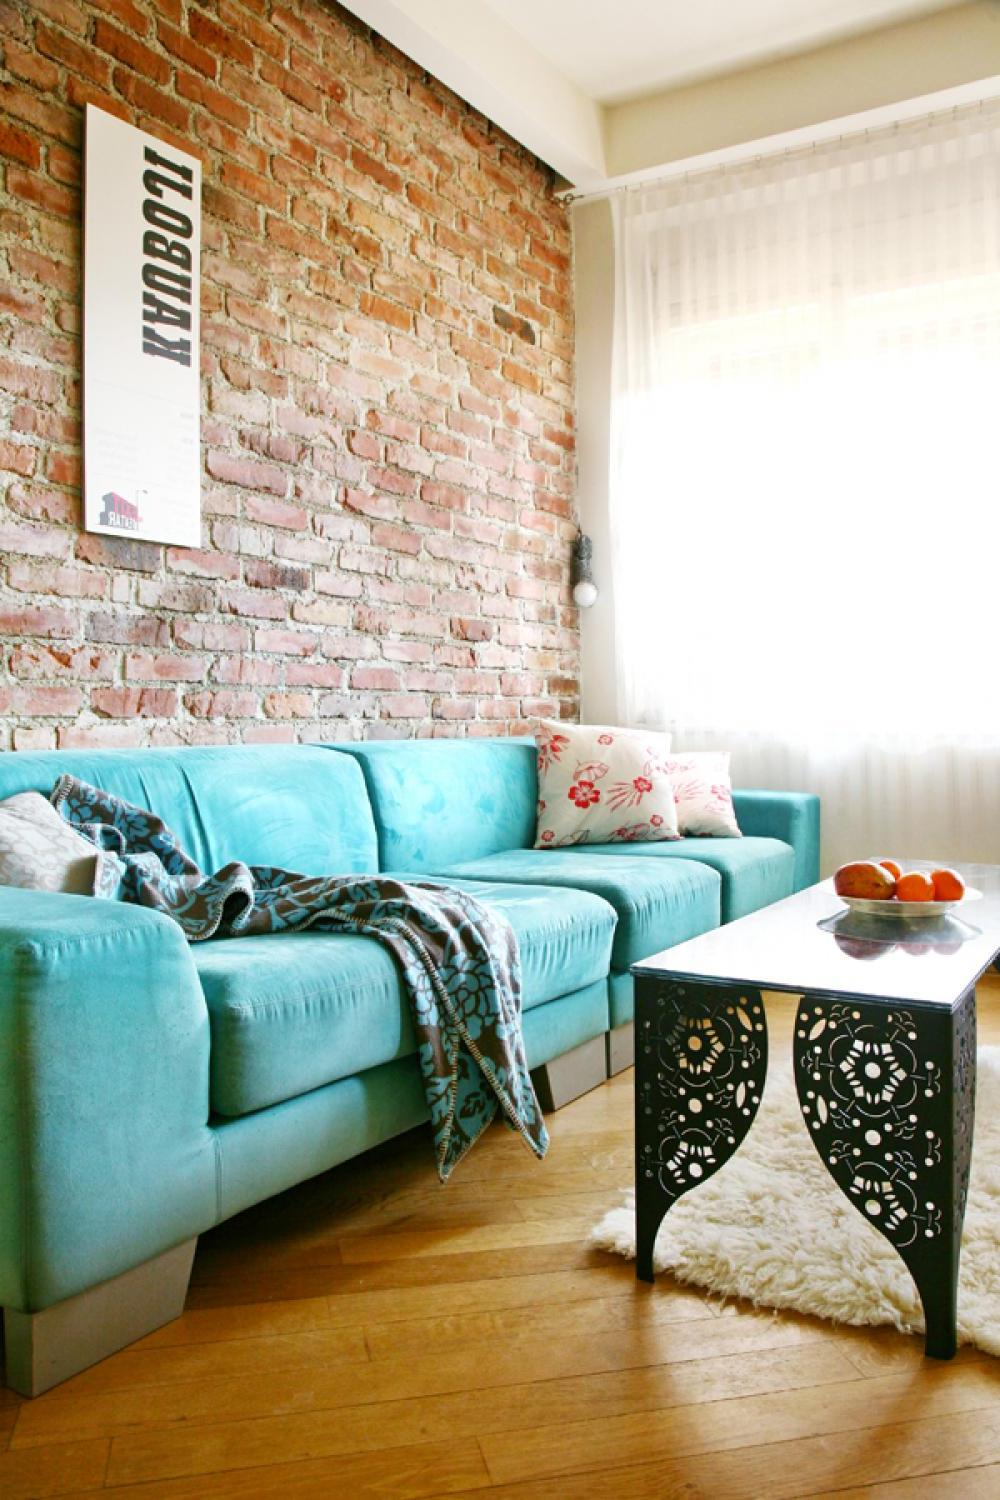 Living Room Wall Rustic Decor: Exposed Brick Wall Living Room Ideas